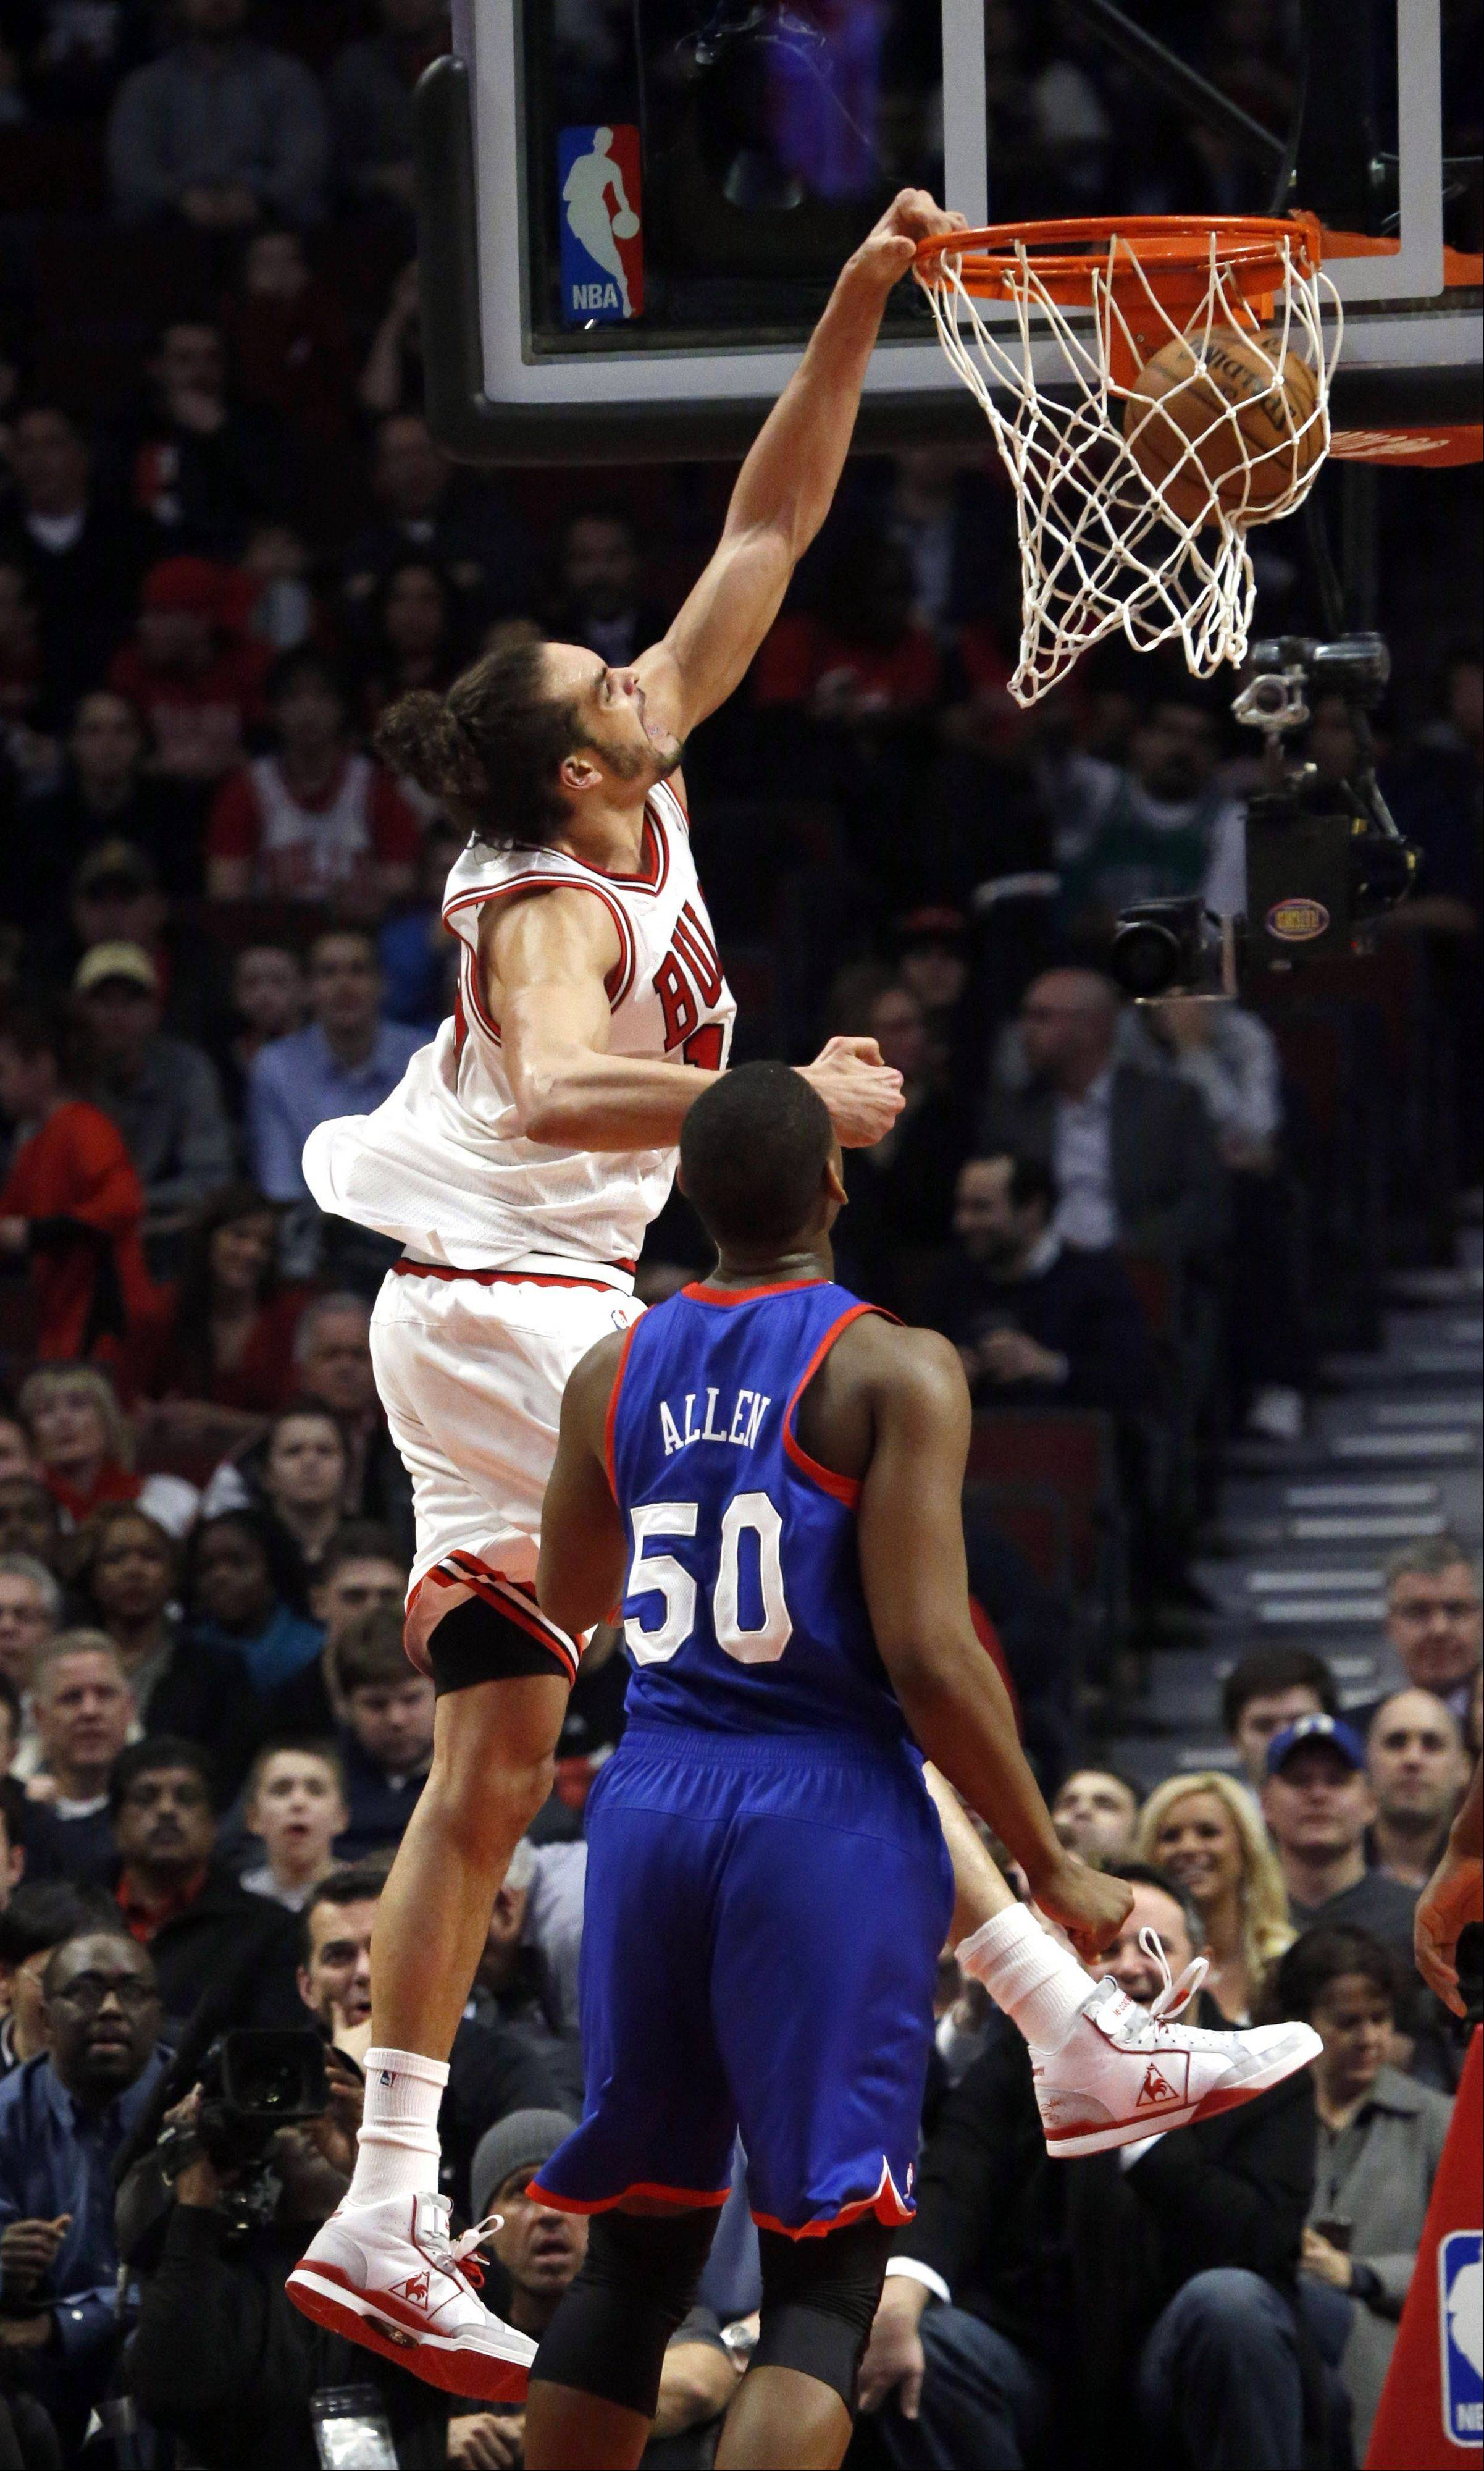 Chicago Bulls center Joakim Noah (13) dunks past Philadelphia 76ers forward Lavoy Allen (50) during the first half of an NBA basketball game, Thursday, Feb. 28, 2013, in Chicago.